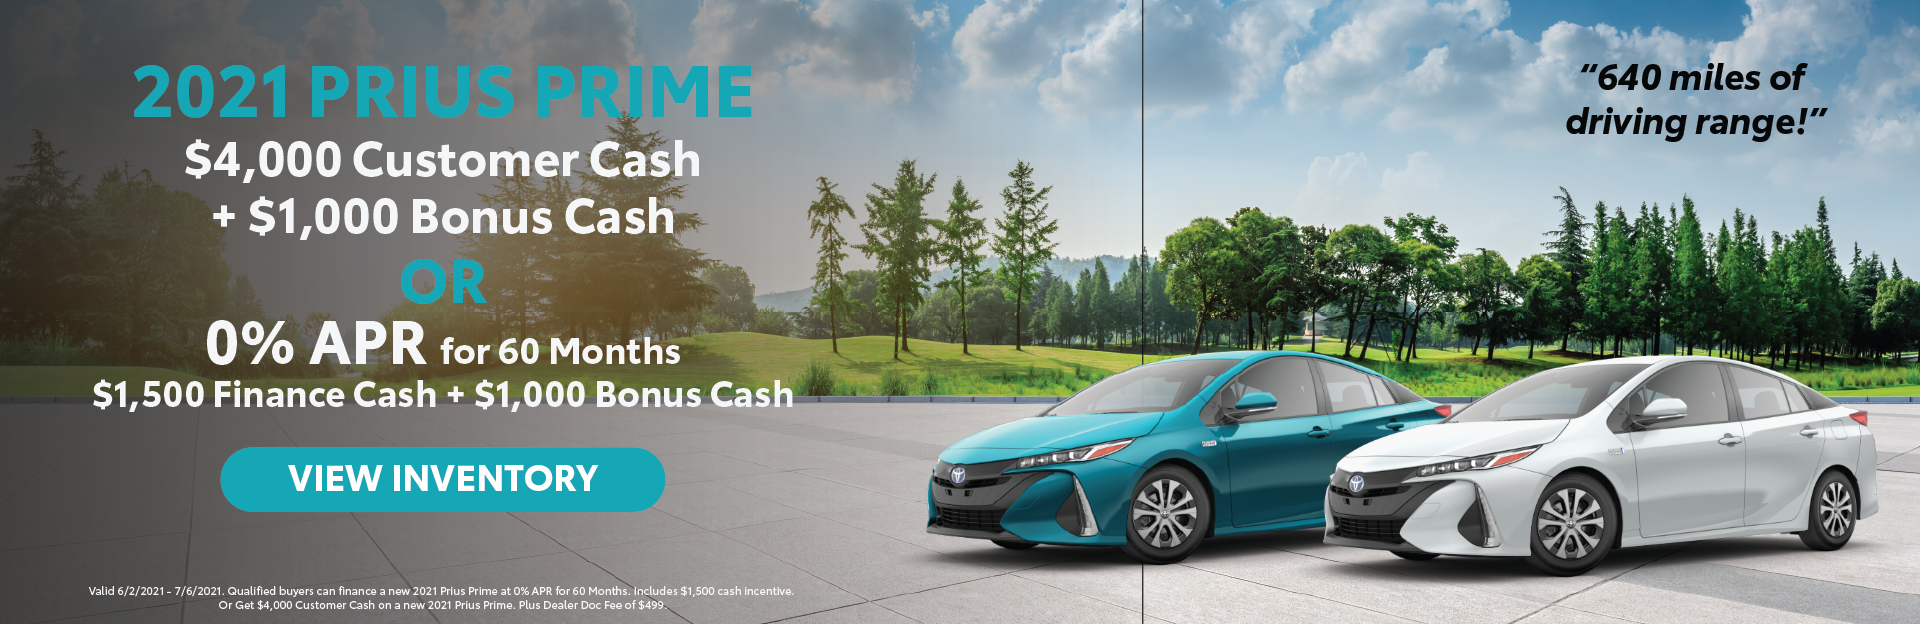 June 2021 – Prius Prime Finance Offers – Lynch Homepage